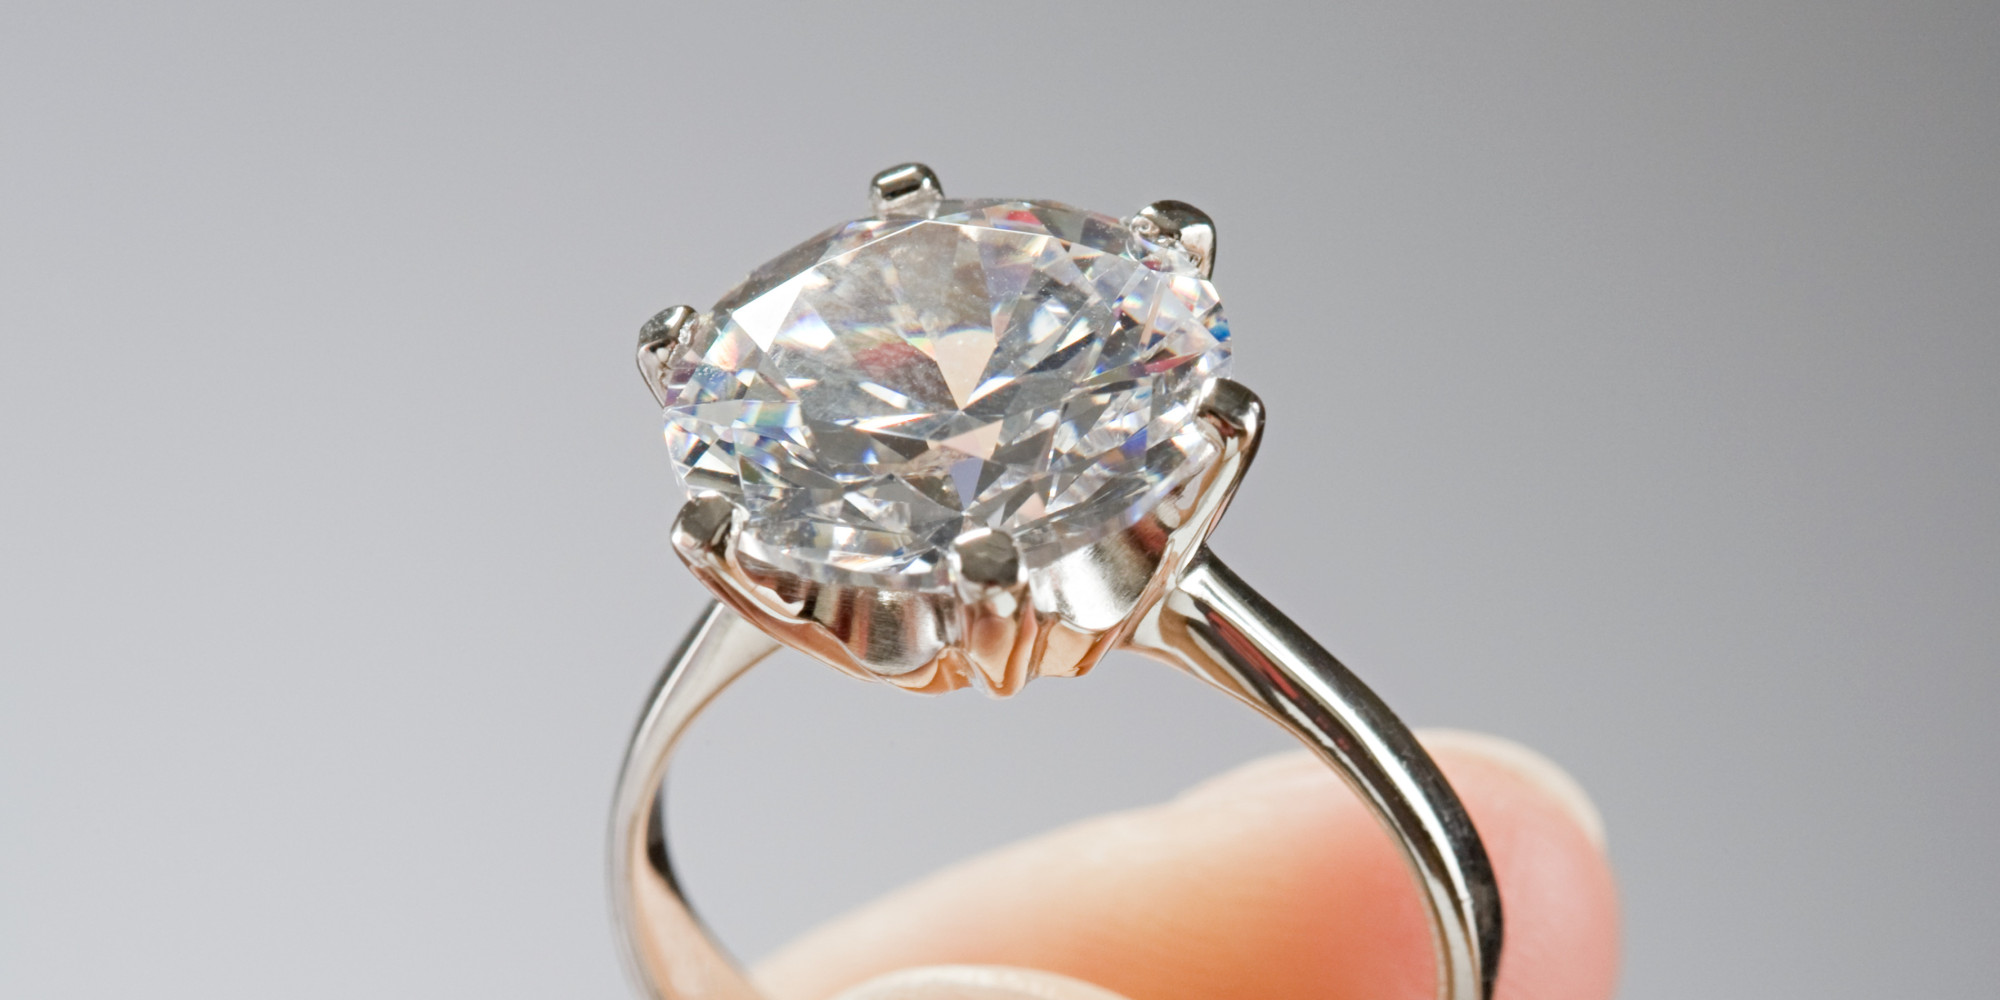 Your Engagement Ring Belongs On Left Finger Not In Suitcase